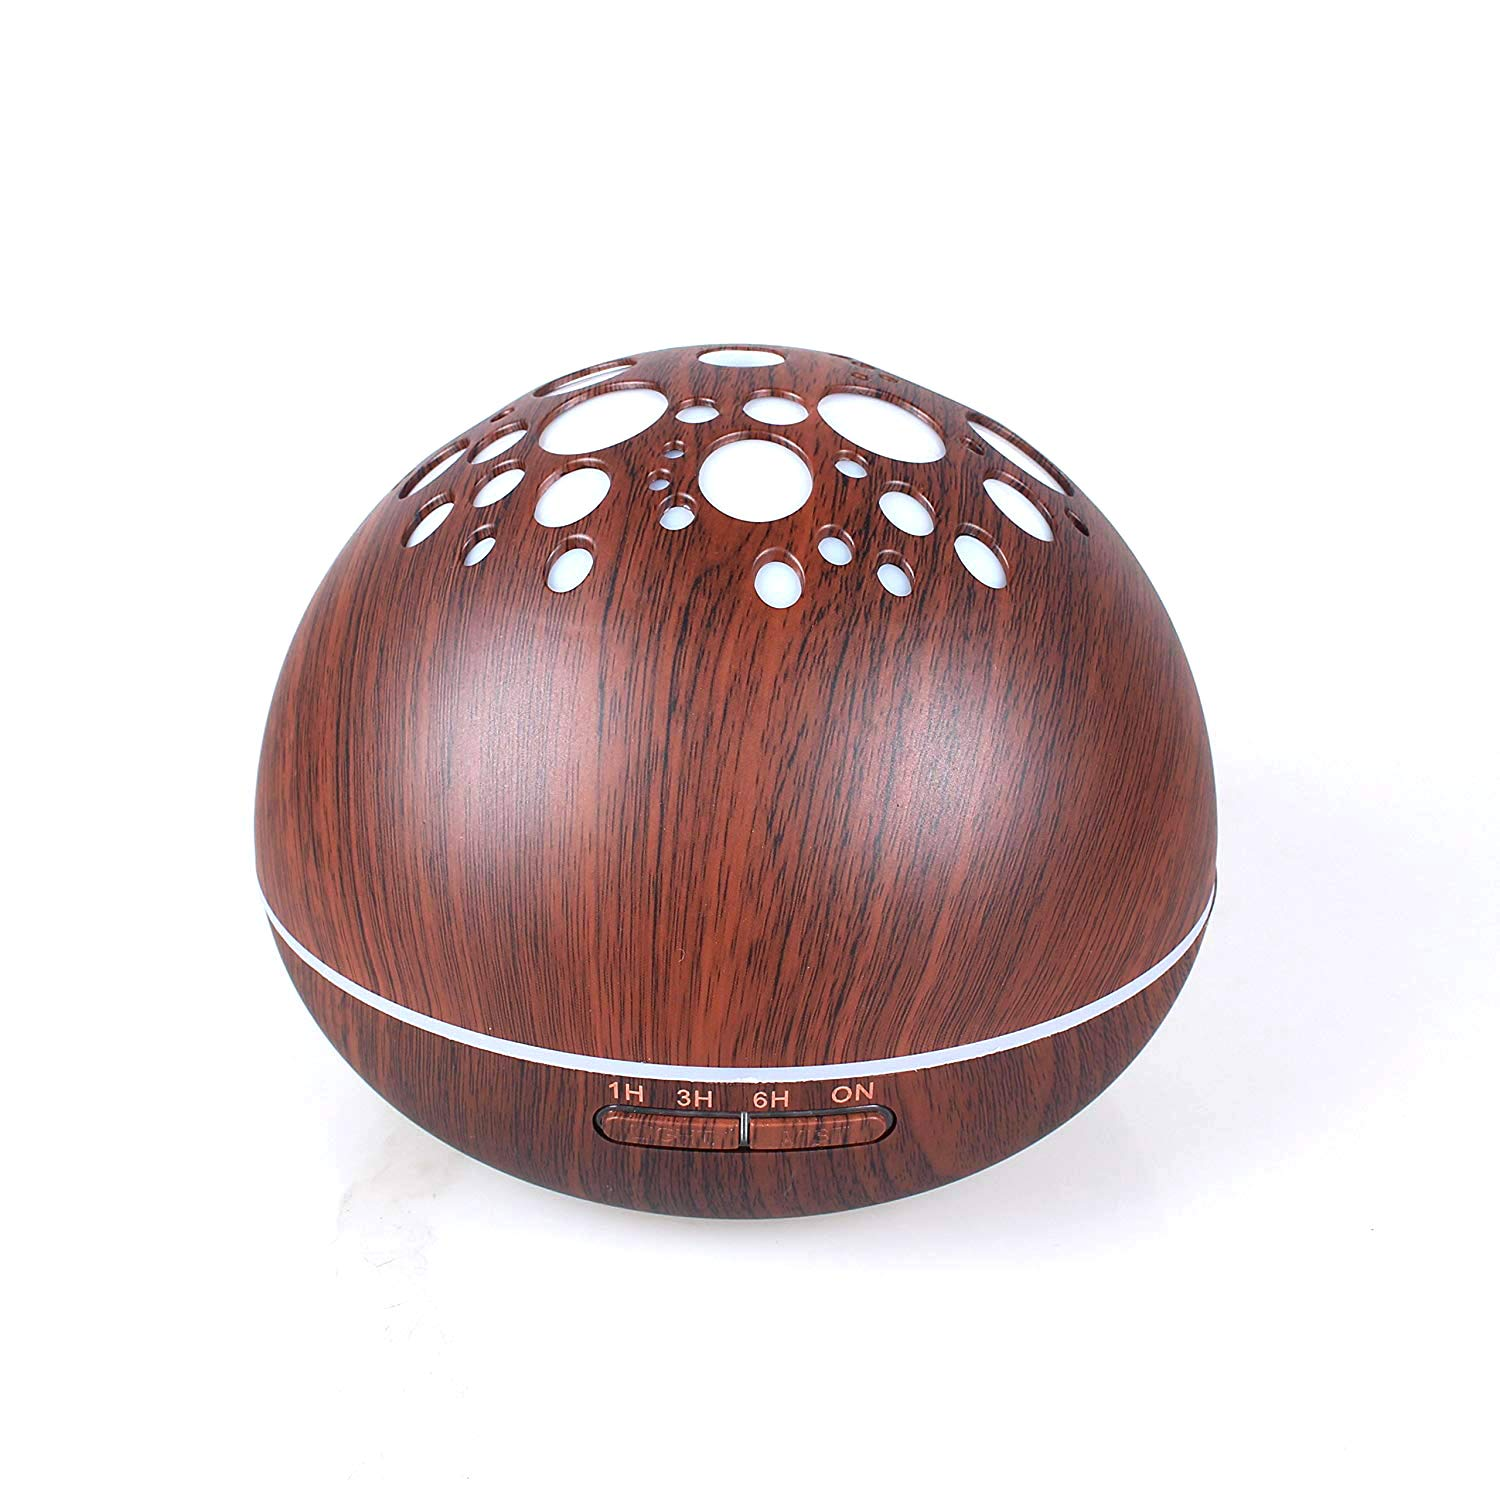 LUOYIMAN Humidifiers 300ml Cool Mist Humidifier Ultrasonic Aroma Essential Diffuser Automatic Shut-off with Variable Night Lights (Deep wooden color)